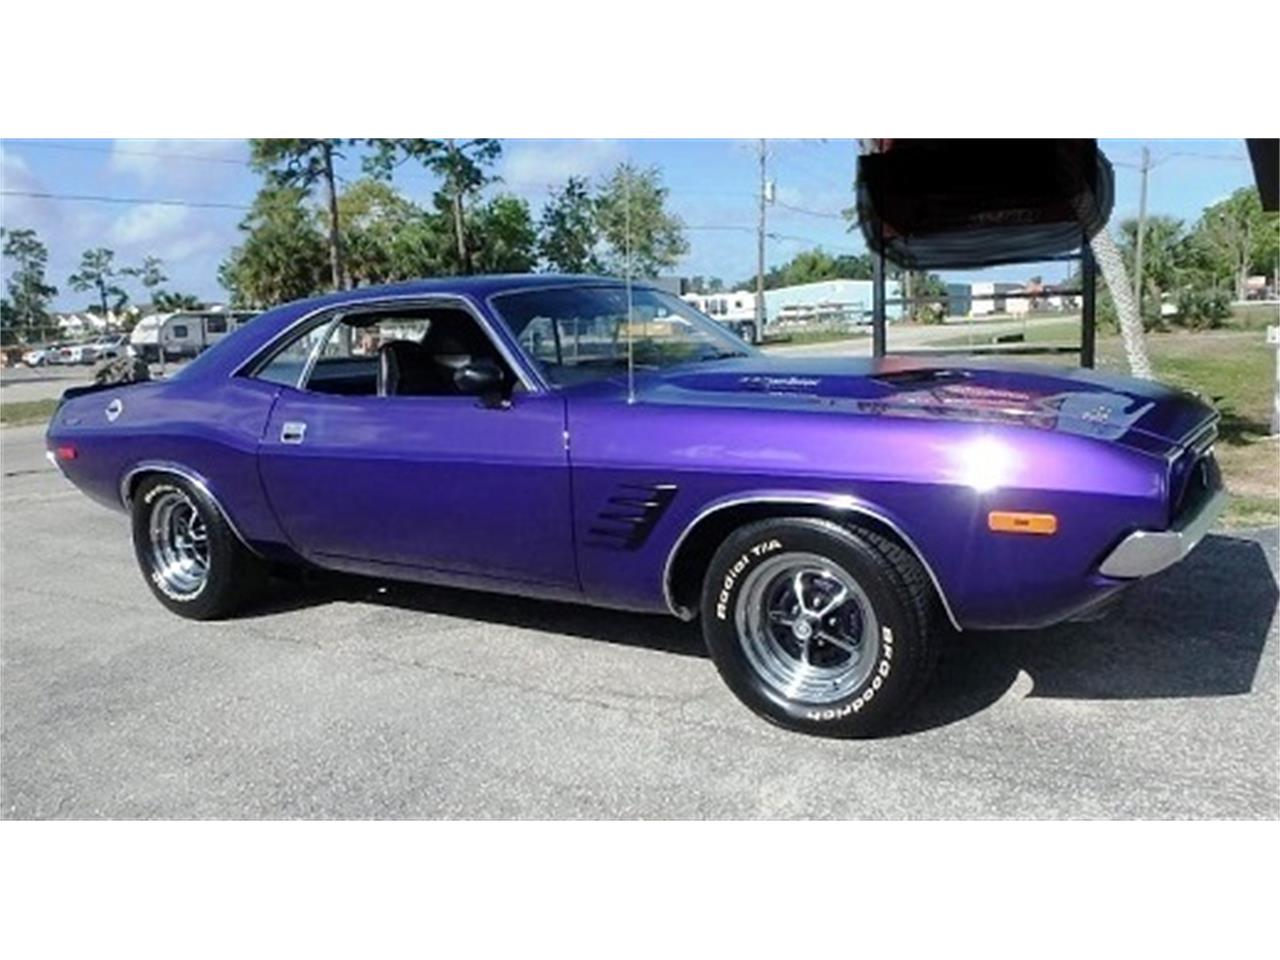 Large Picture of Classic '72 Dodge Challenger located in POMPANO BEACH Florida - $29,500.00 - PVNR